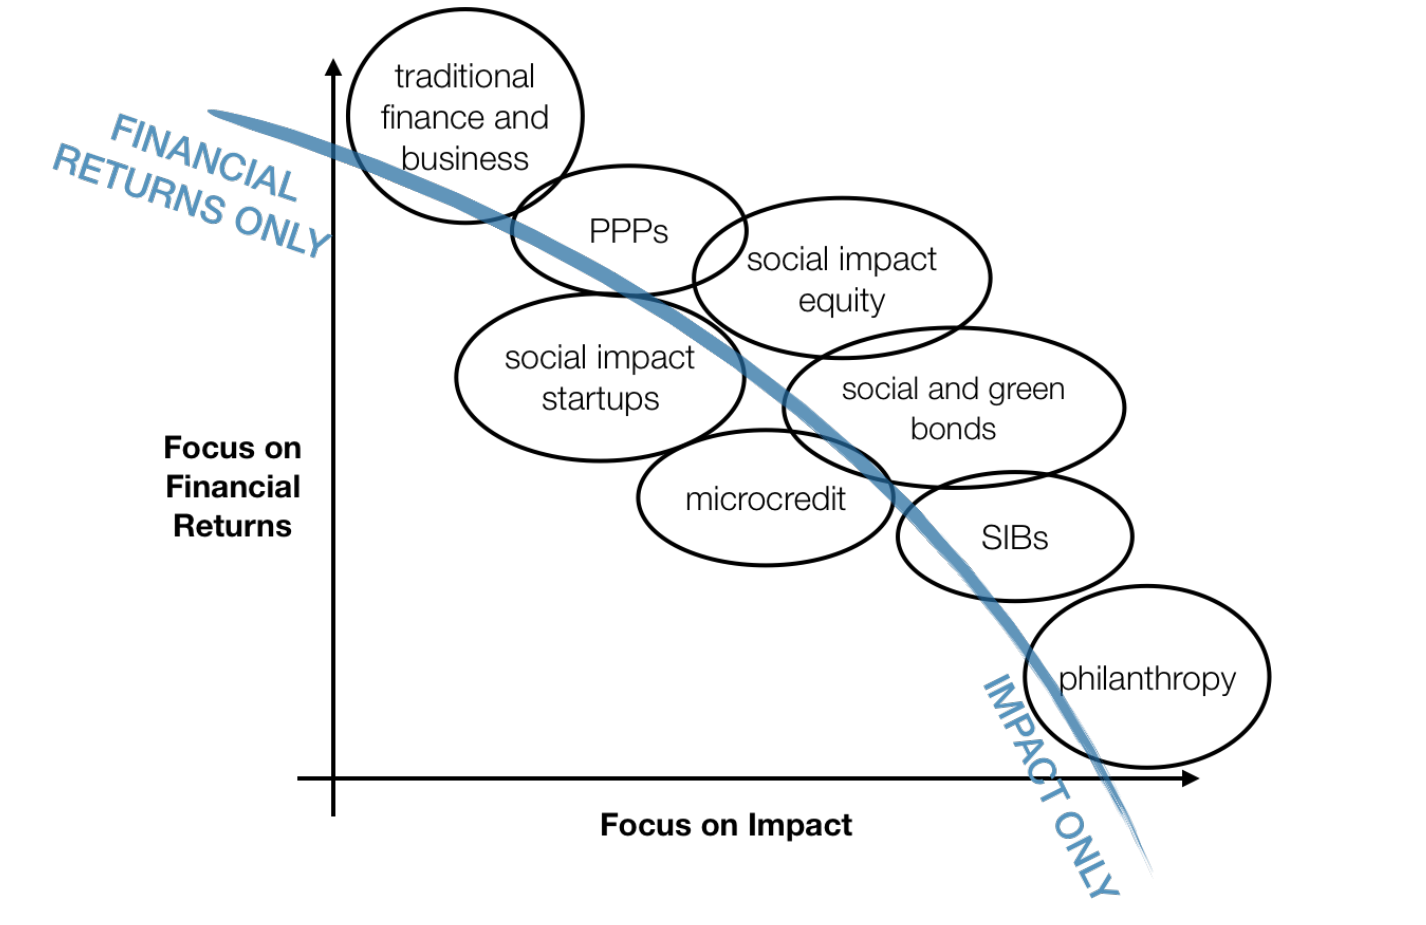 Impact finance continuum (Quelle: PlusValue)